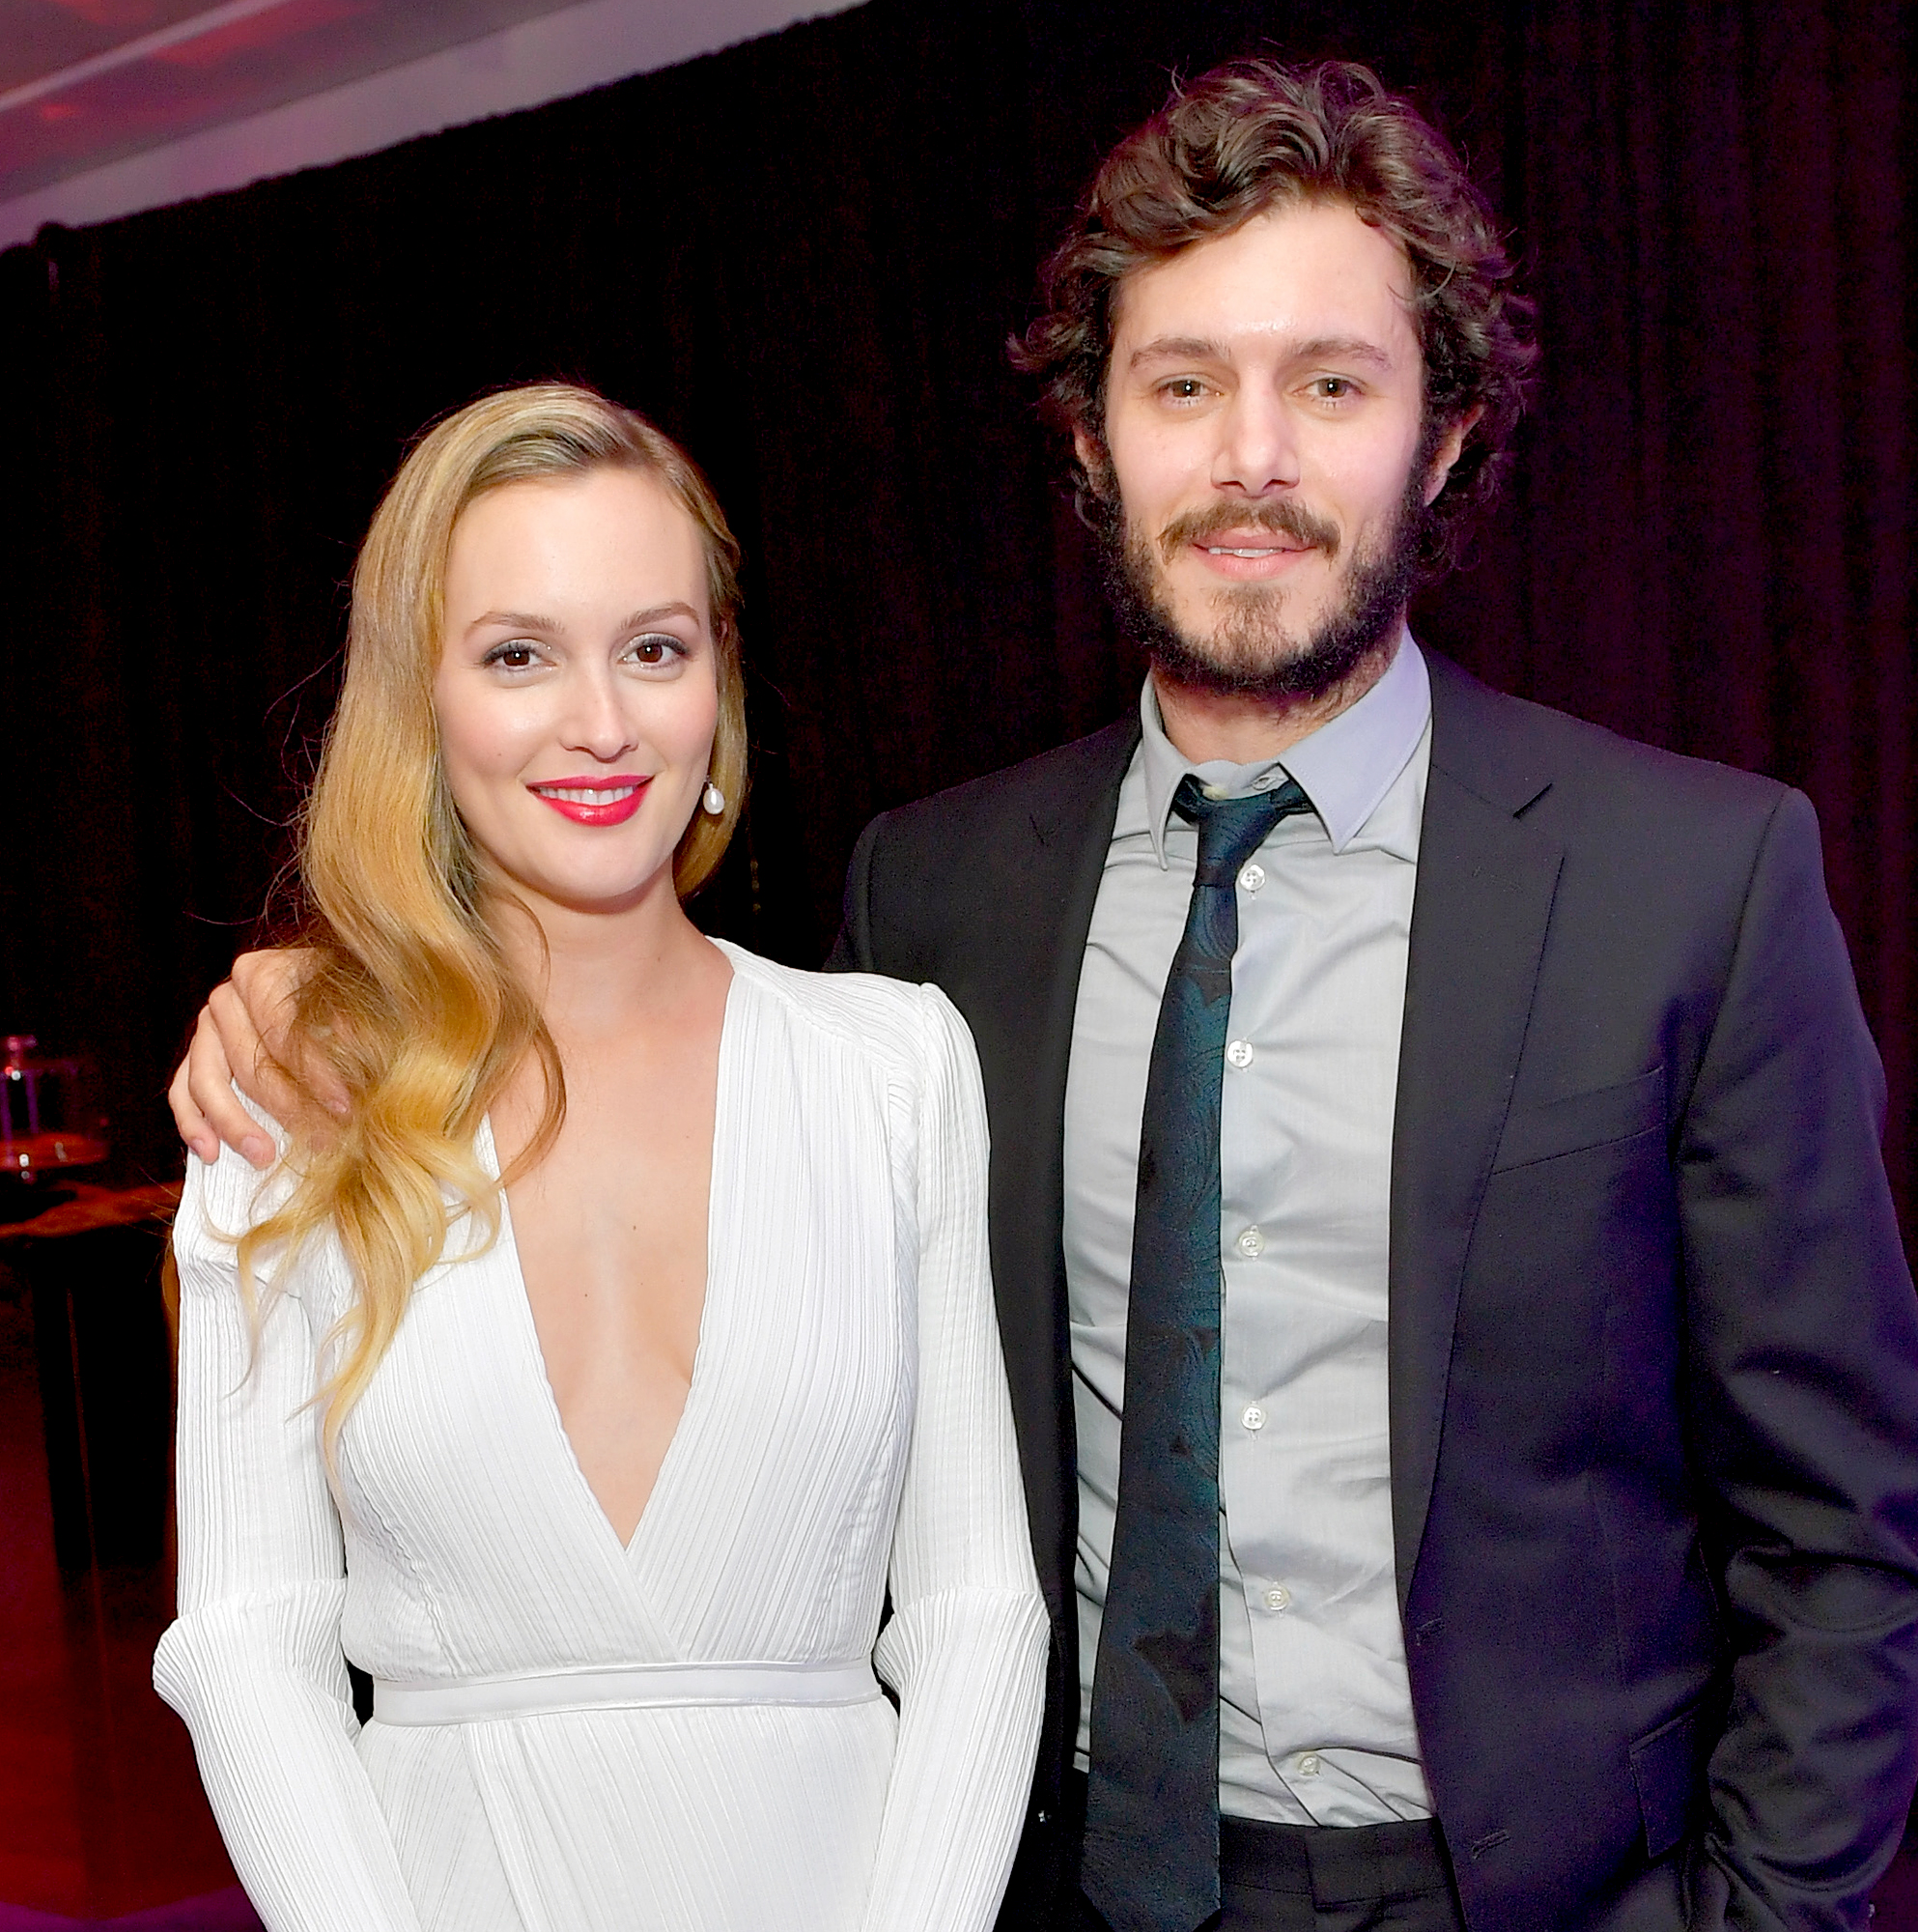 leighton-meester-adam-brody - Leighton Meester and Adam Brody attend The 2017 InStyle and Warner Bros. 73rd Annual Golden Globe Awards Post-Party at The Beverly Hilton Hotel on January 8, 2017 in Beverly Hills, California.